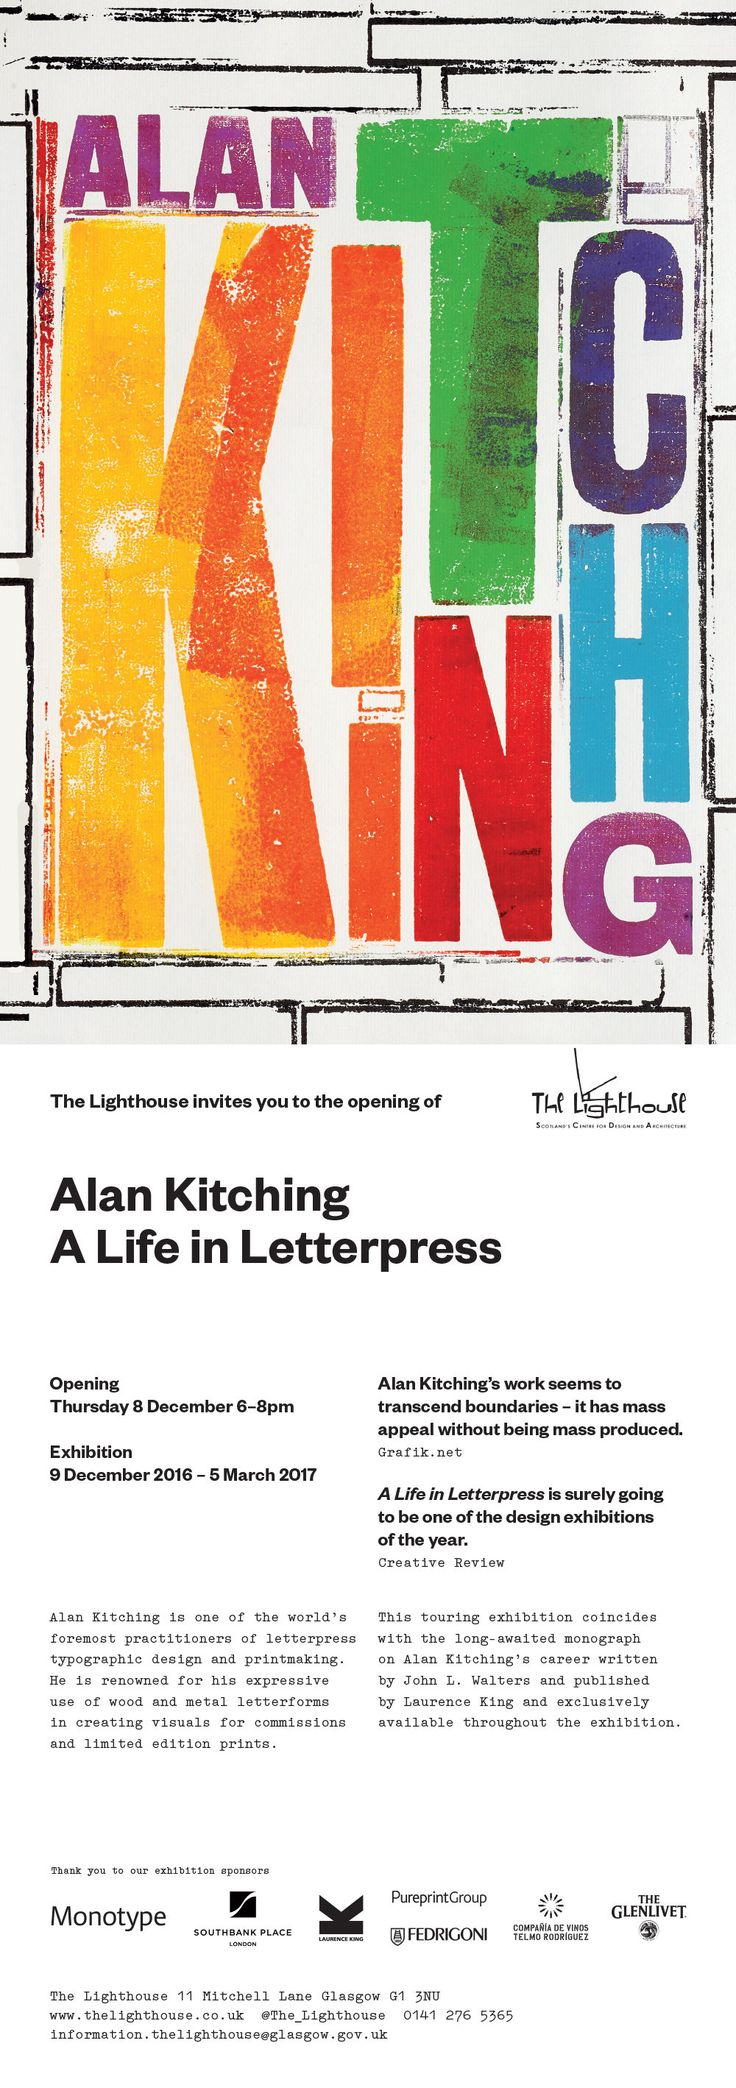 You are invited to the opening of Alan Kitching: A Life in Letterpress Exhibition